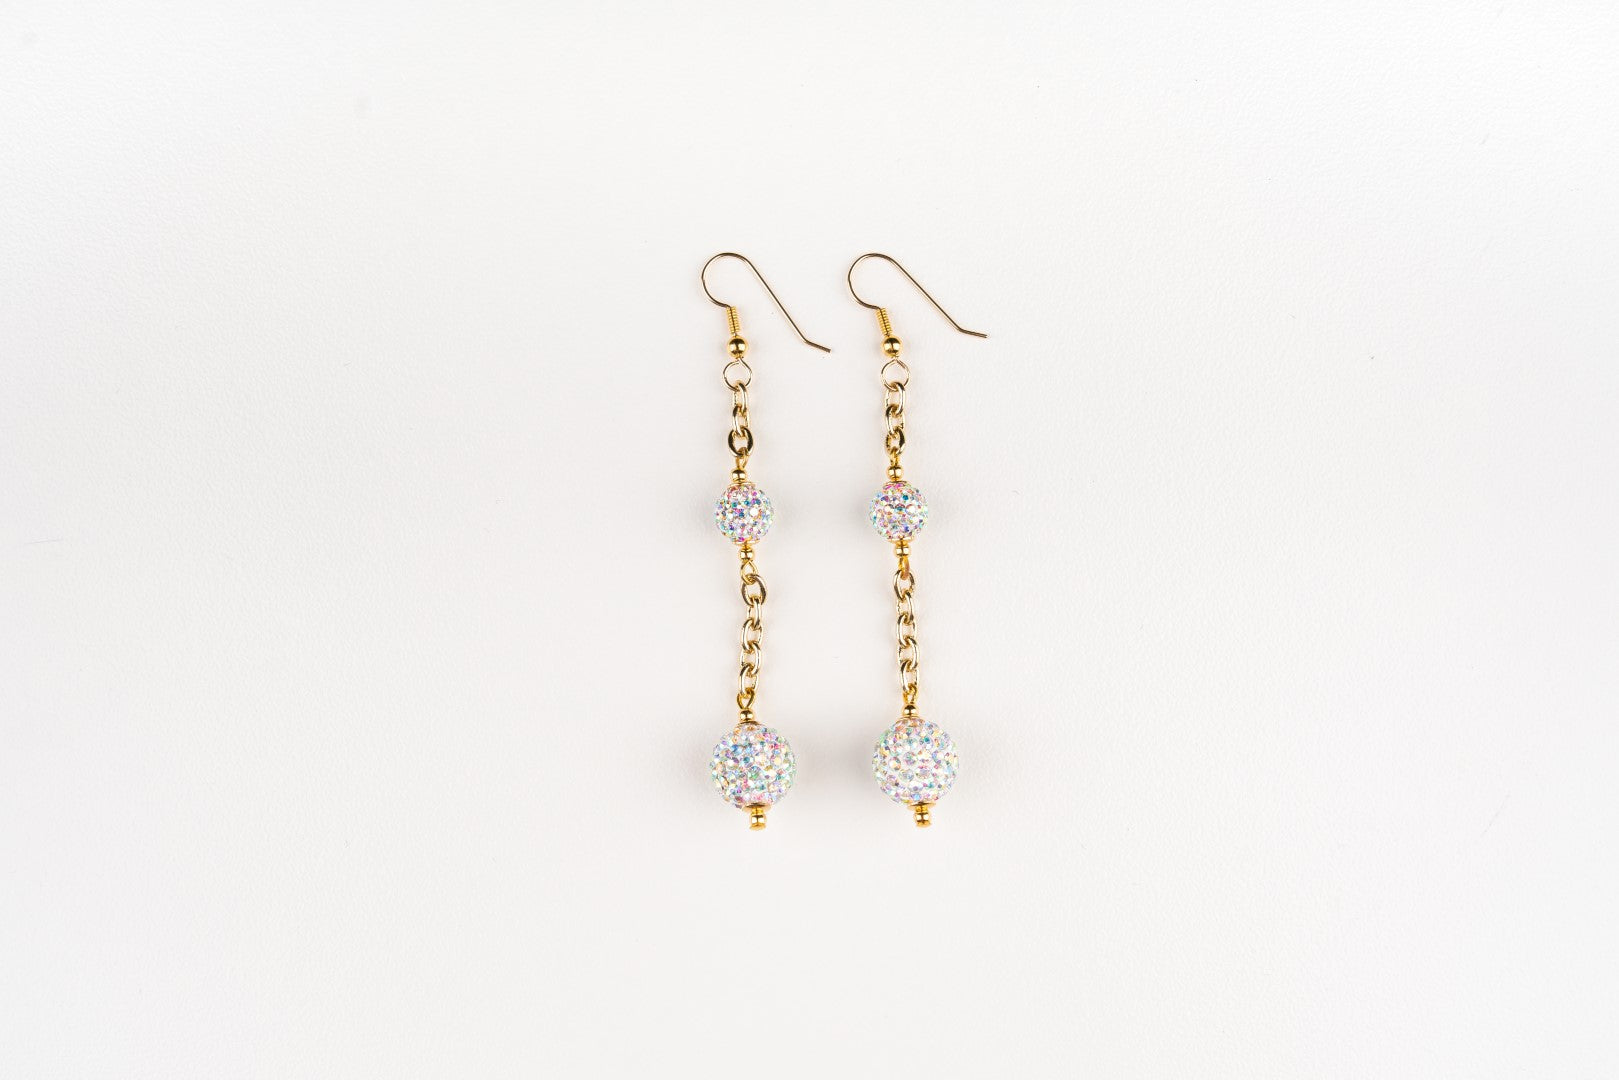 Carolily Finery earrings made from pave' beads and gold plated chain